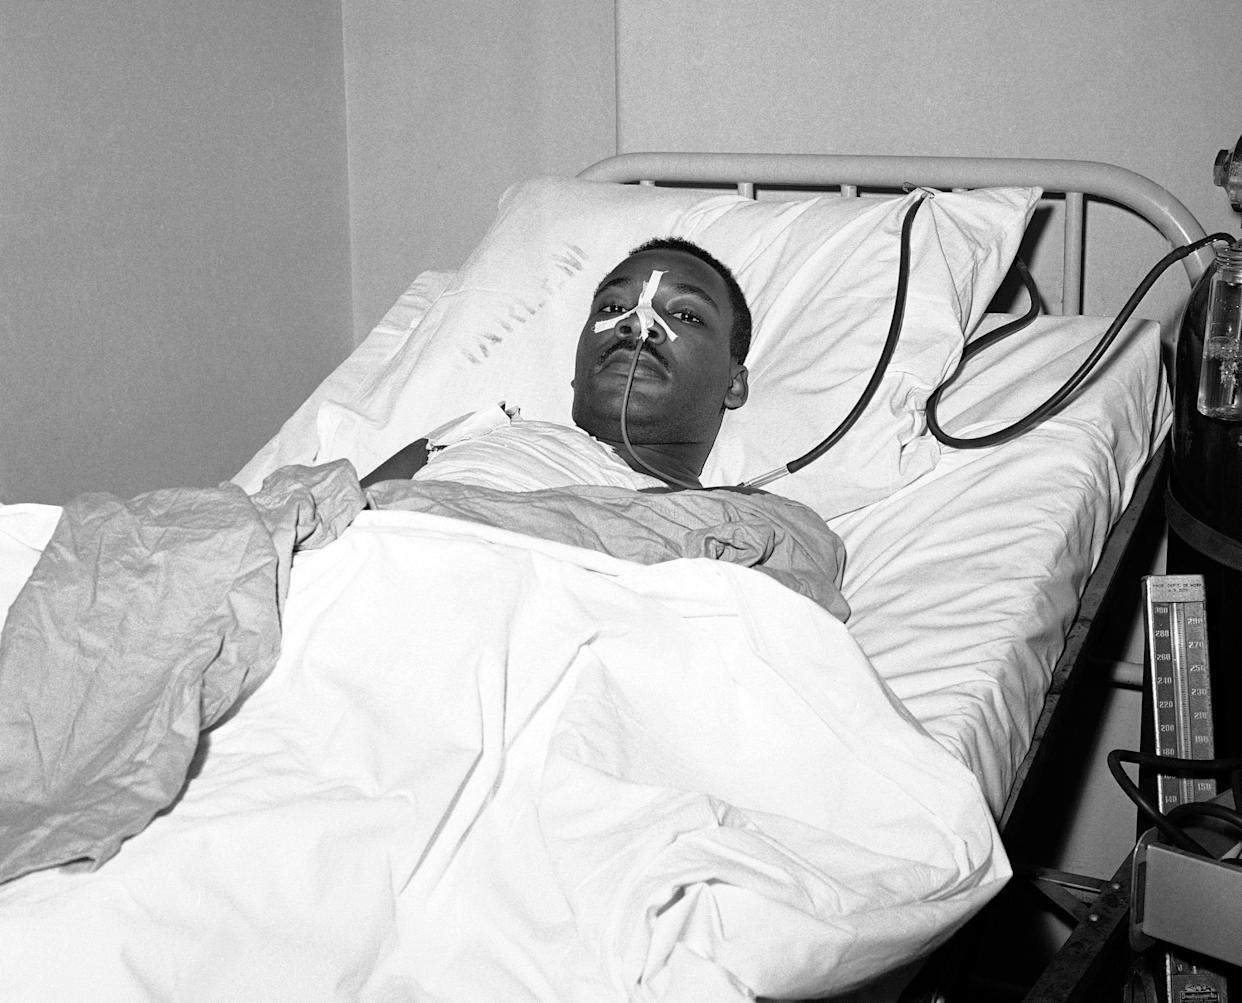 Martin Luther King Jr. recovers from surgery in bed at New York's Harlem Hospital following an operation to remove steel letter opener from his chest after being stabbed by a mentally disturbed woman, Sept. 21, 1958. (Photo: John Lent/AP)